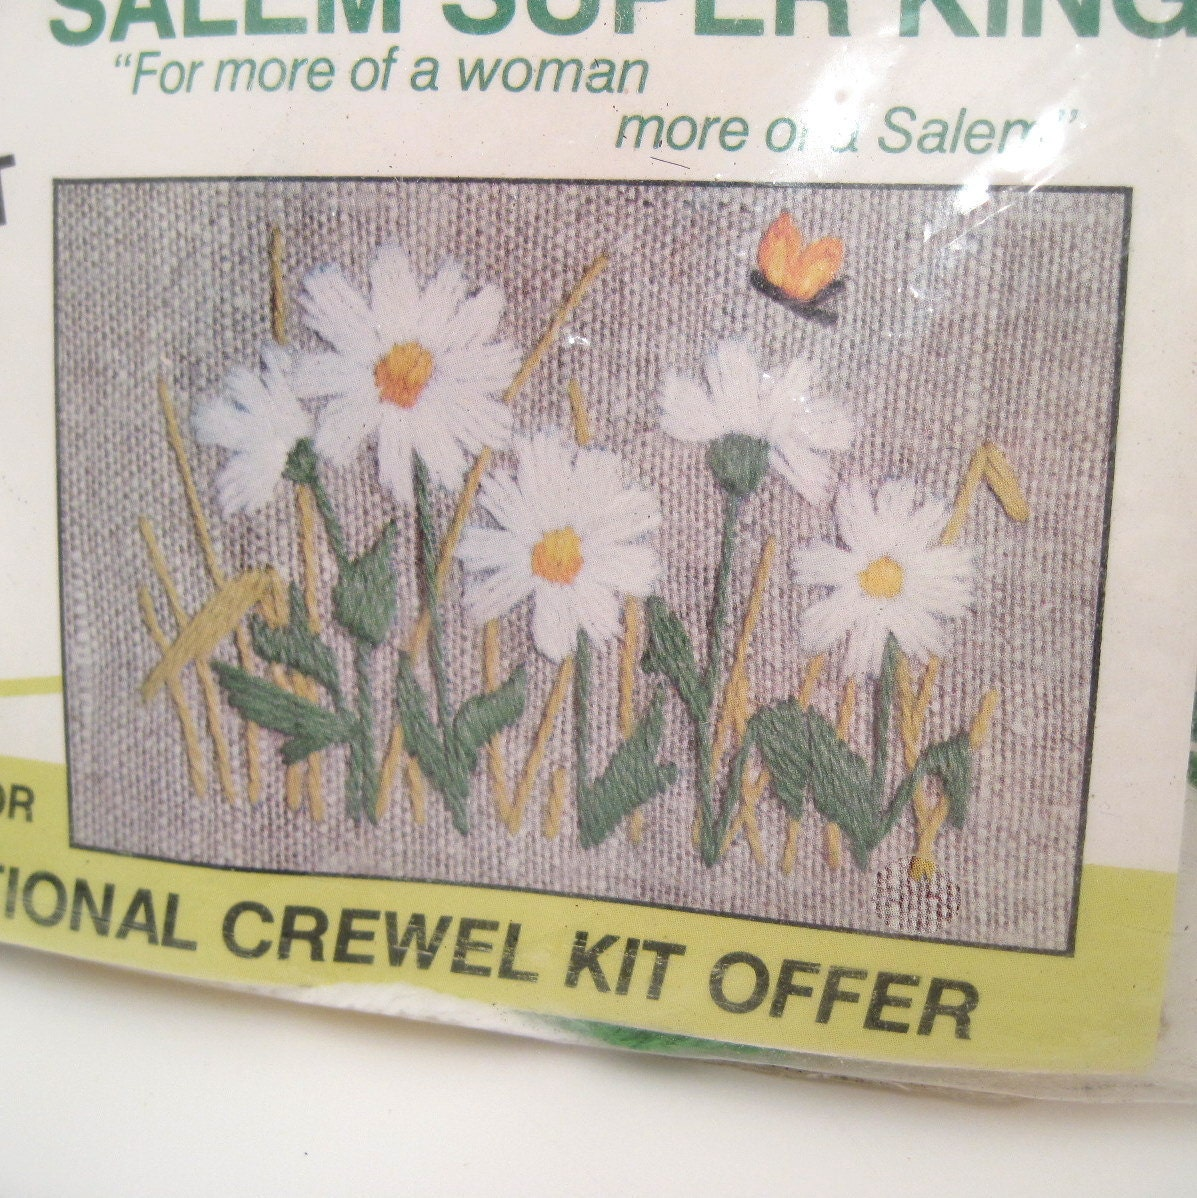 Mini Crewel Embroidery Kit Vintage Crewel Kit By ChaosSupplies